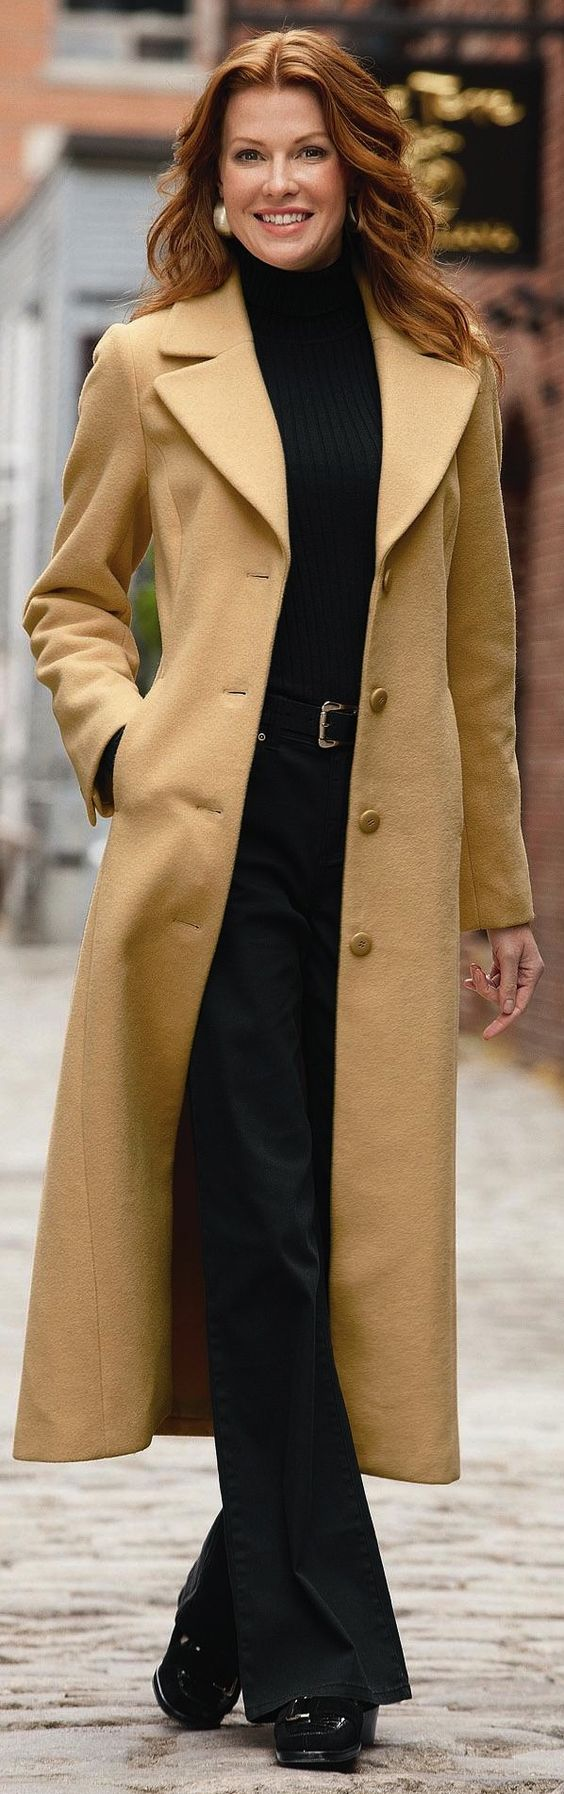 Truly a modern duster coat given modern lapels, length, buttons, and fit.